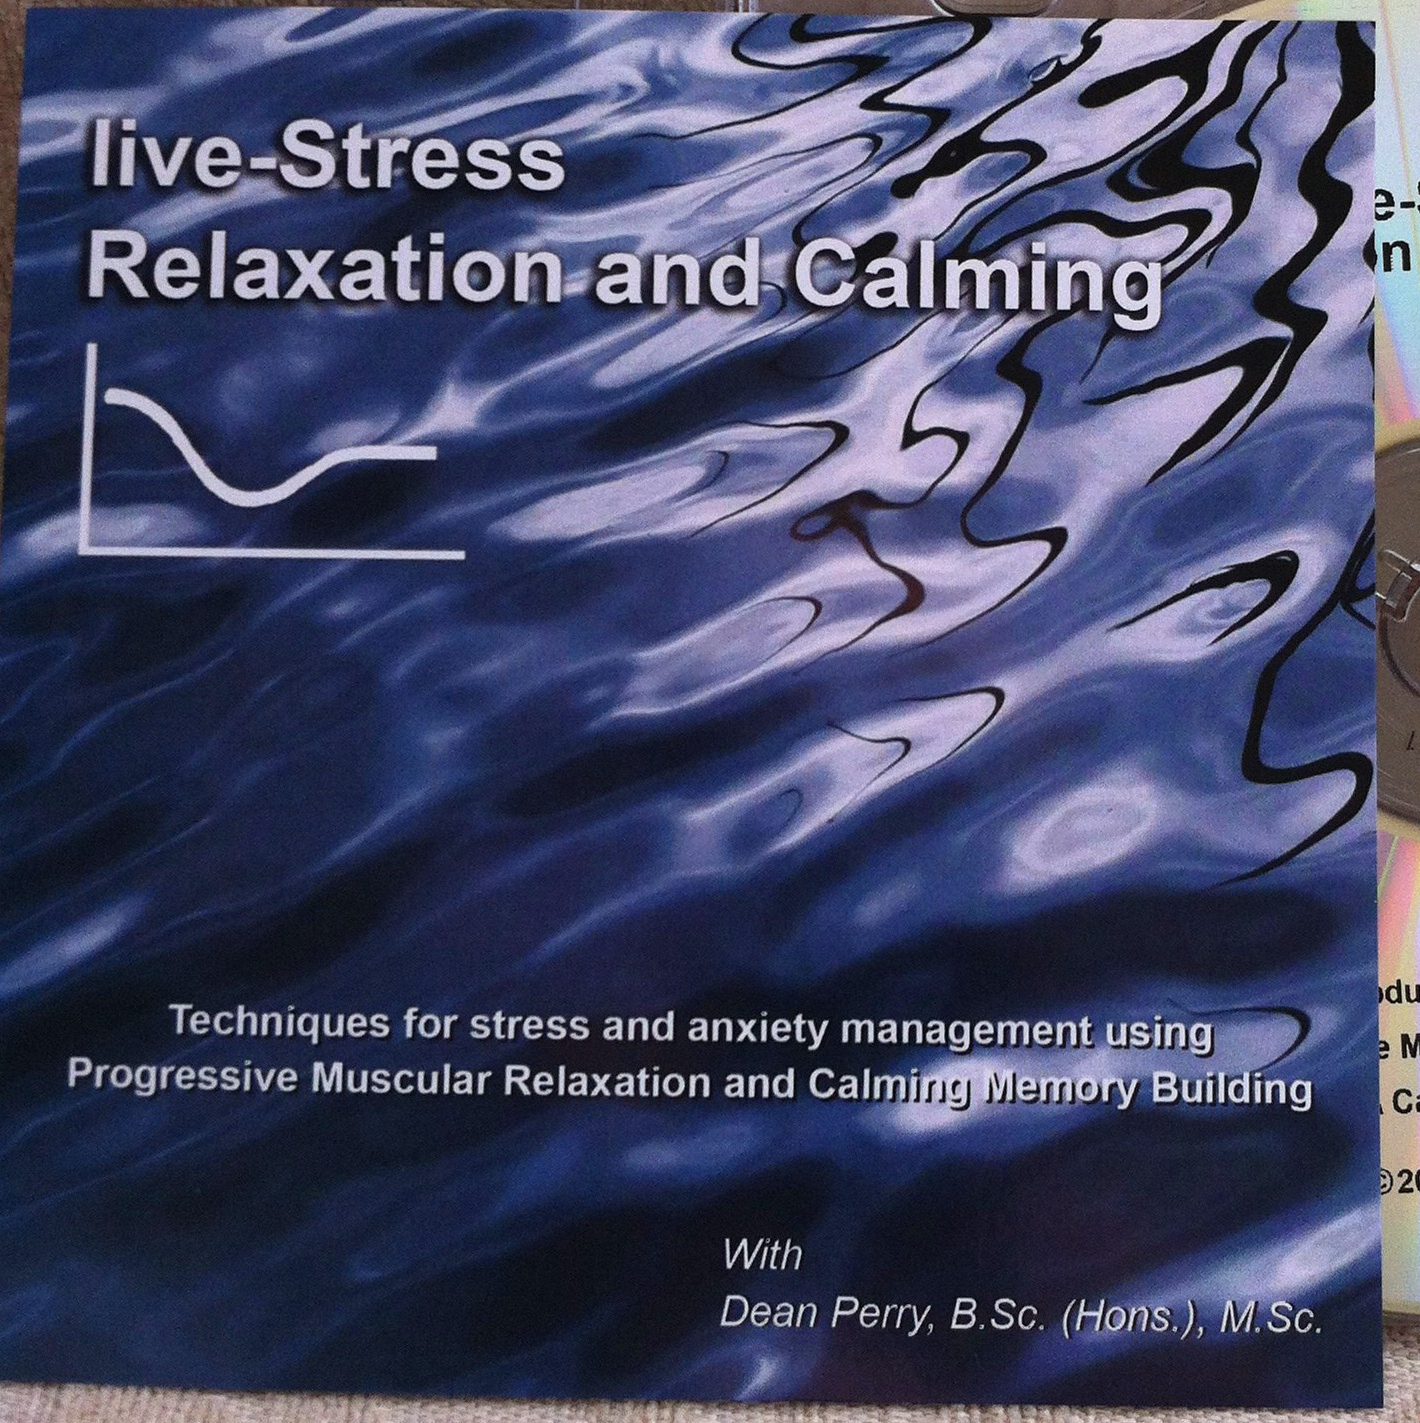 The live-Stress Program